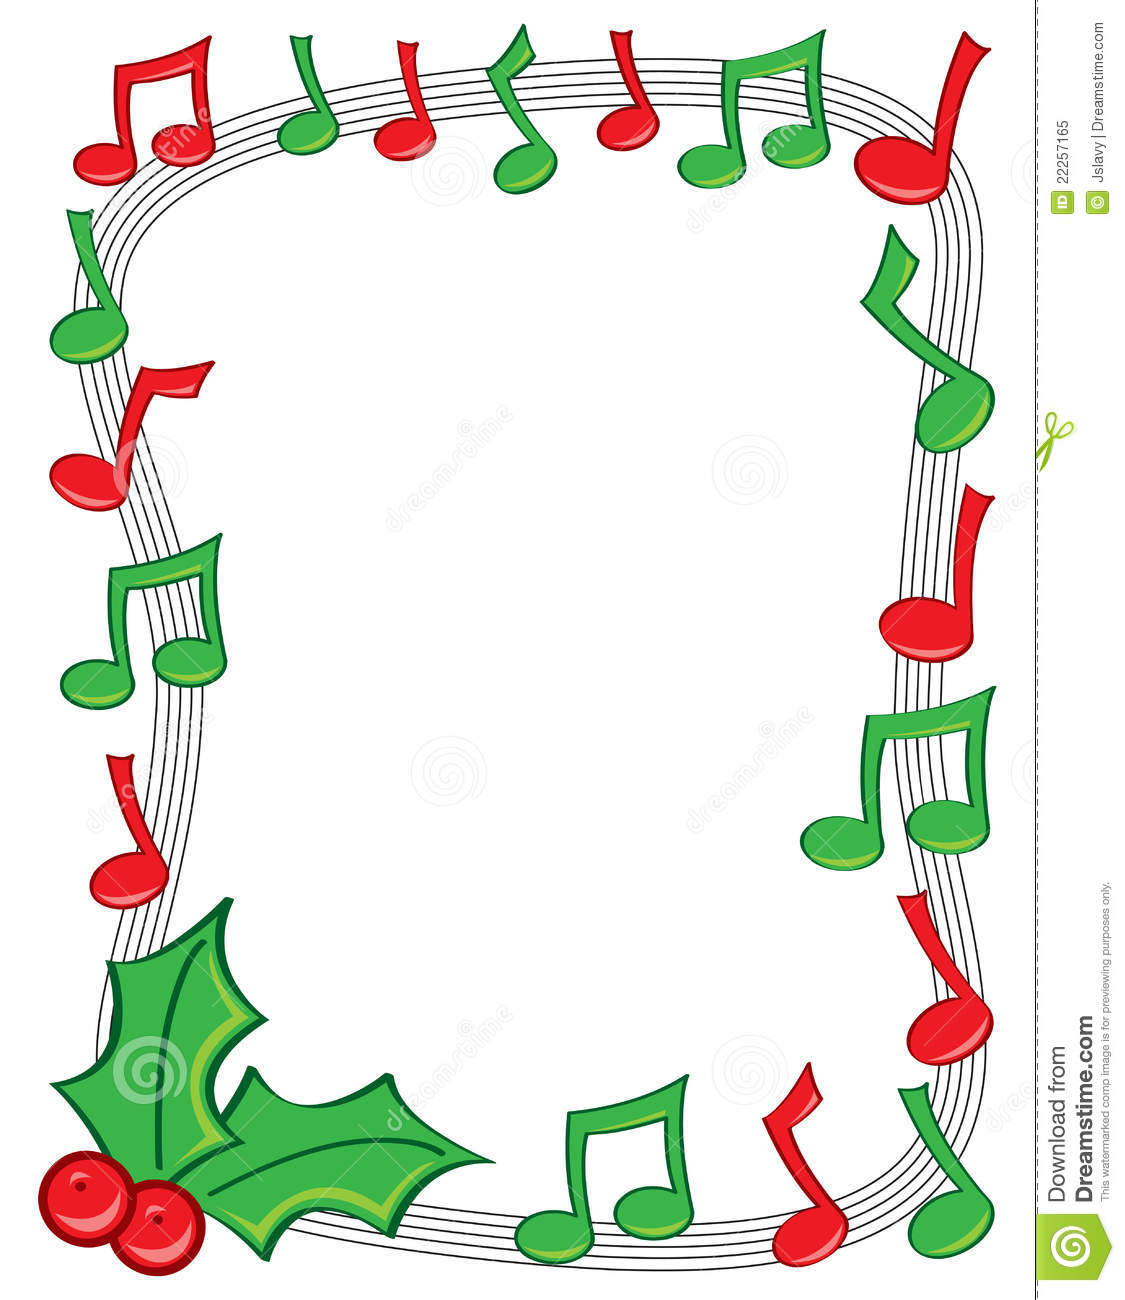 Christmas Music Notes Border Clipart Pan-Christmas Music Notes Border Clipart Panda Free Clipart Images-6